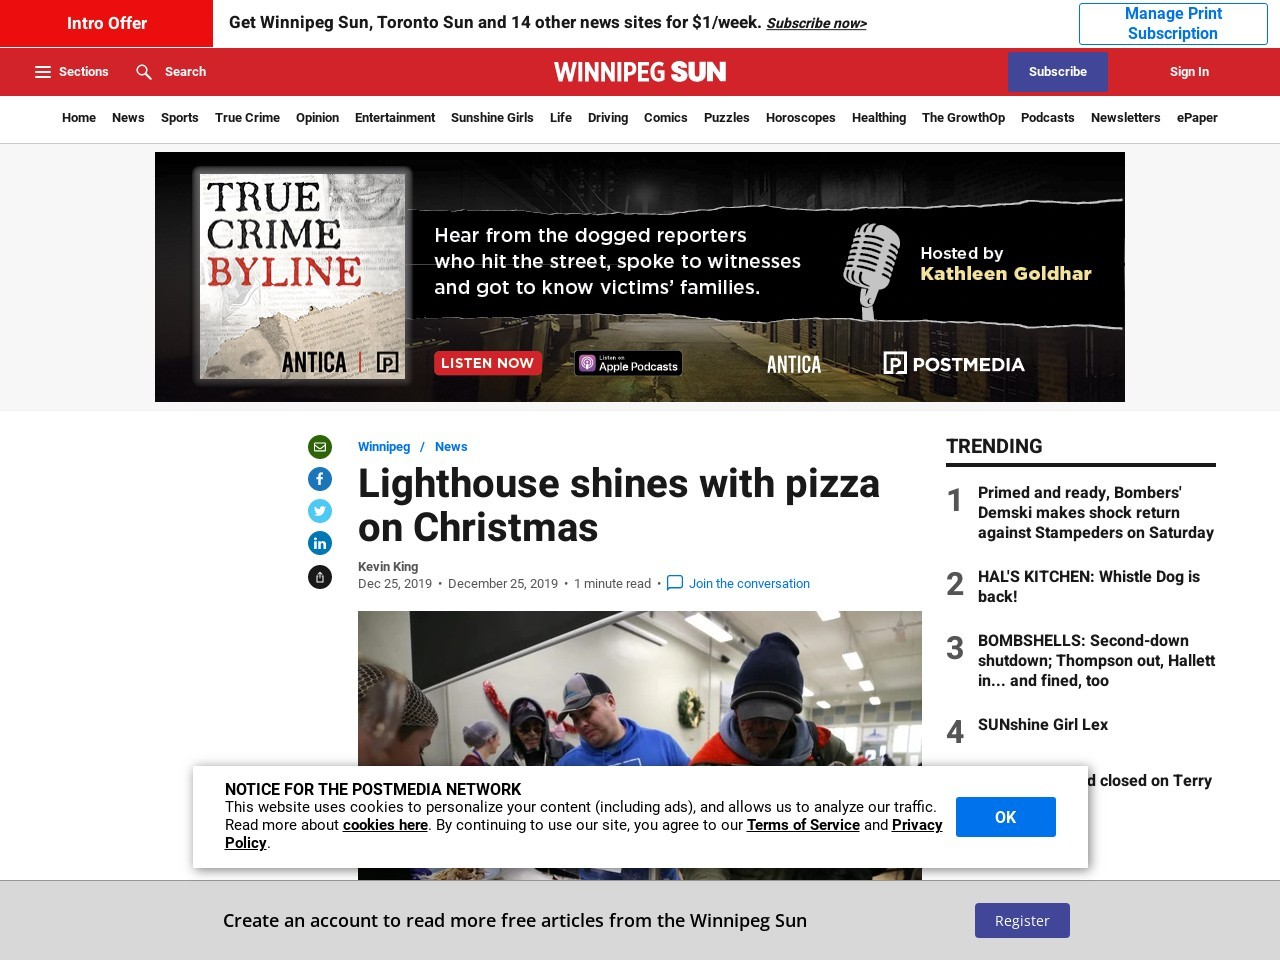 Lighthouse shines with pizza on Christmas